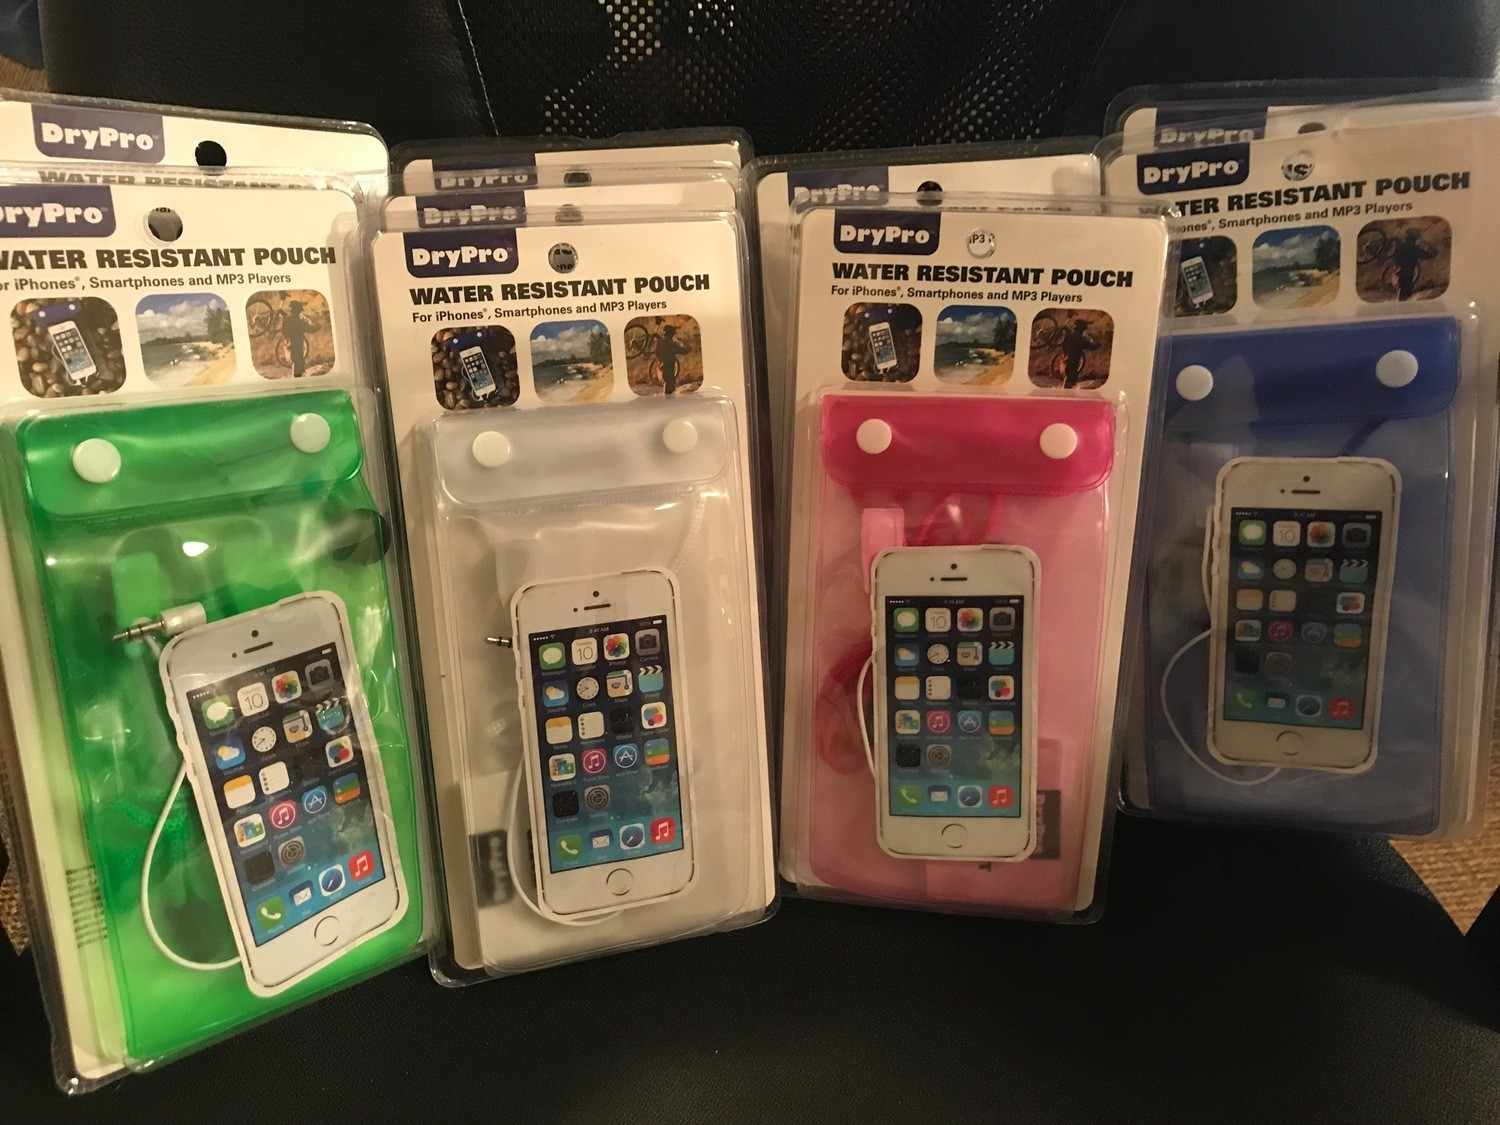 Dry Pro Water Resistant Pouch for Iphones , smartphones and MP3 players